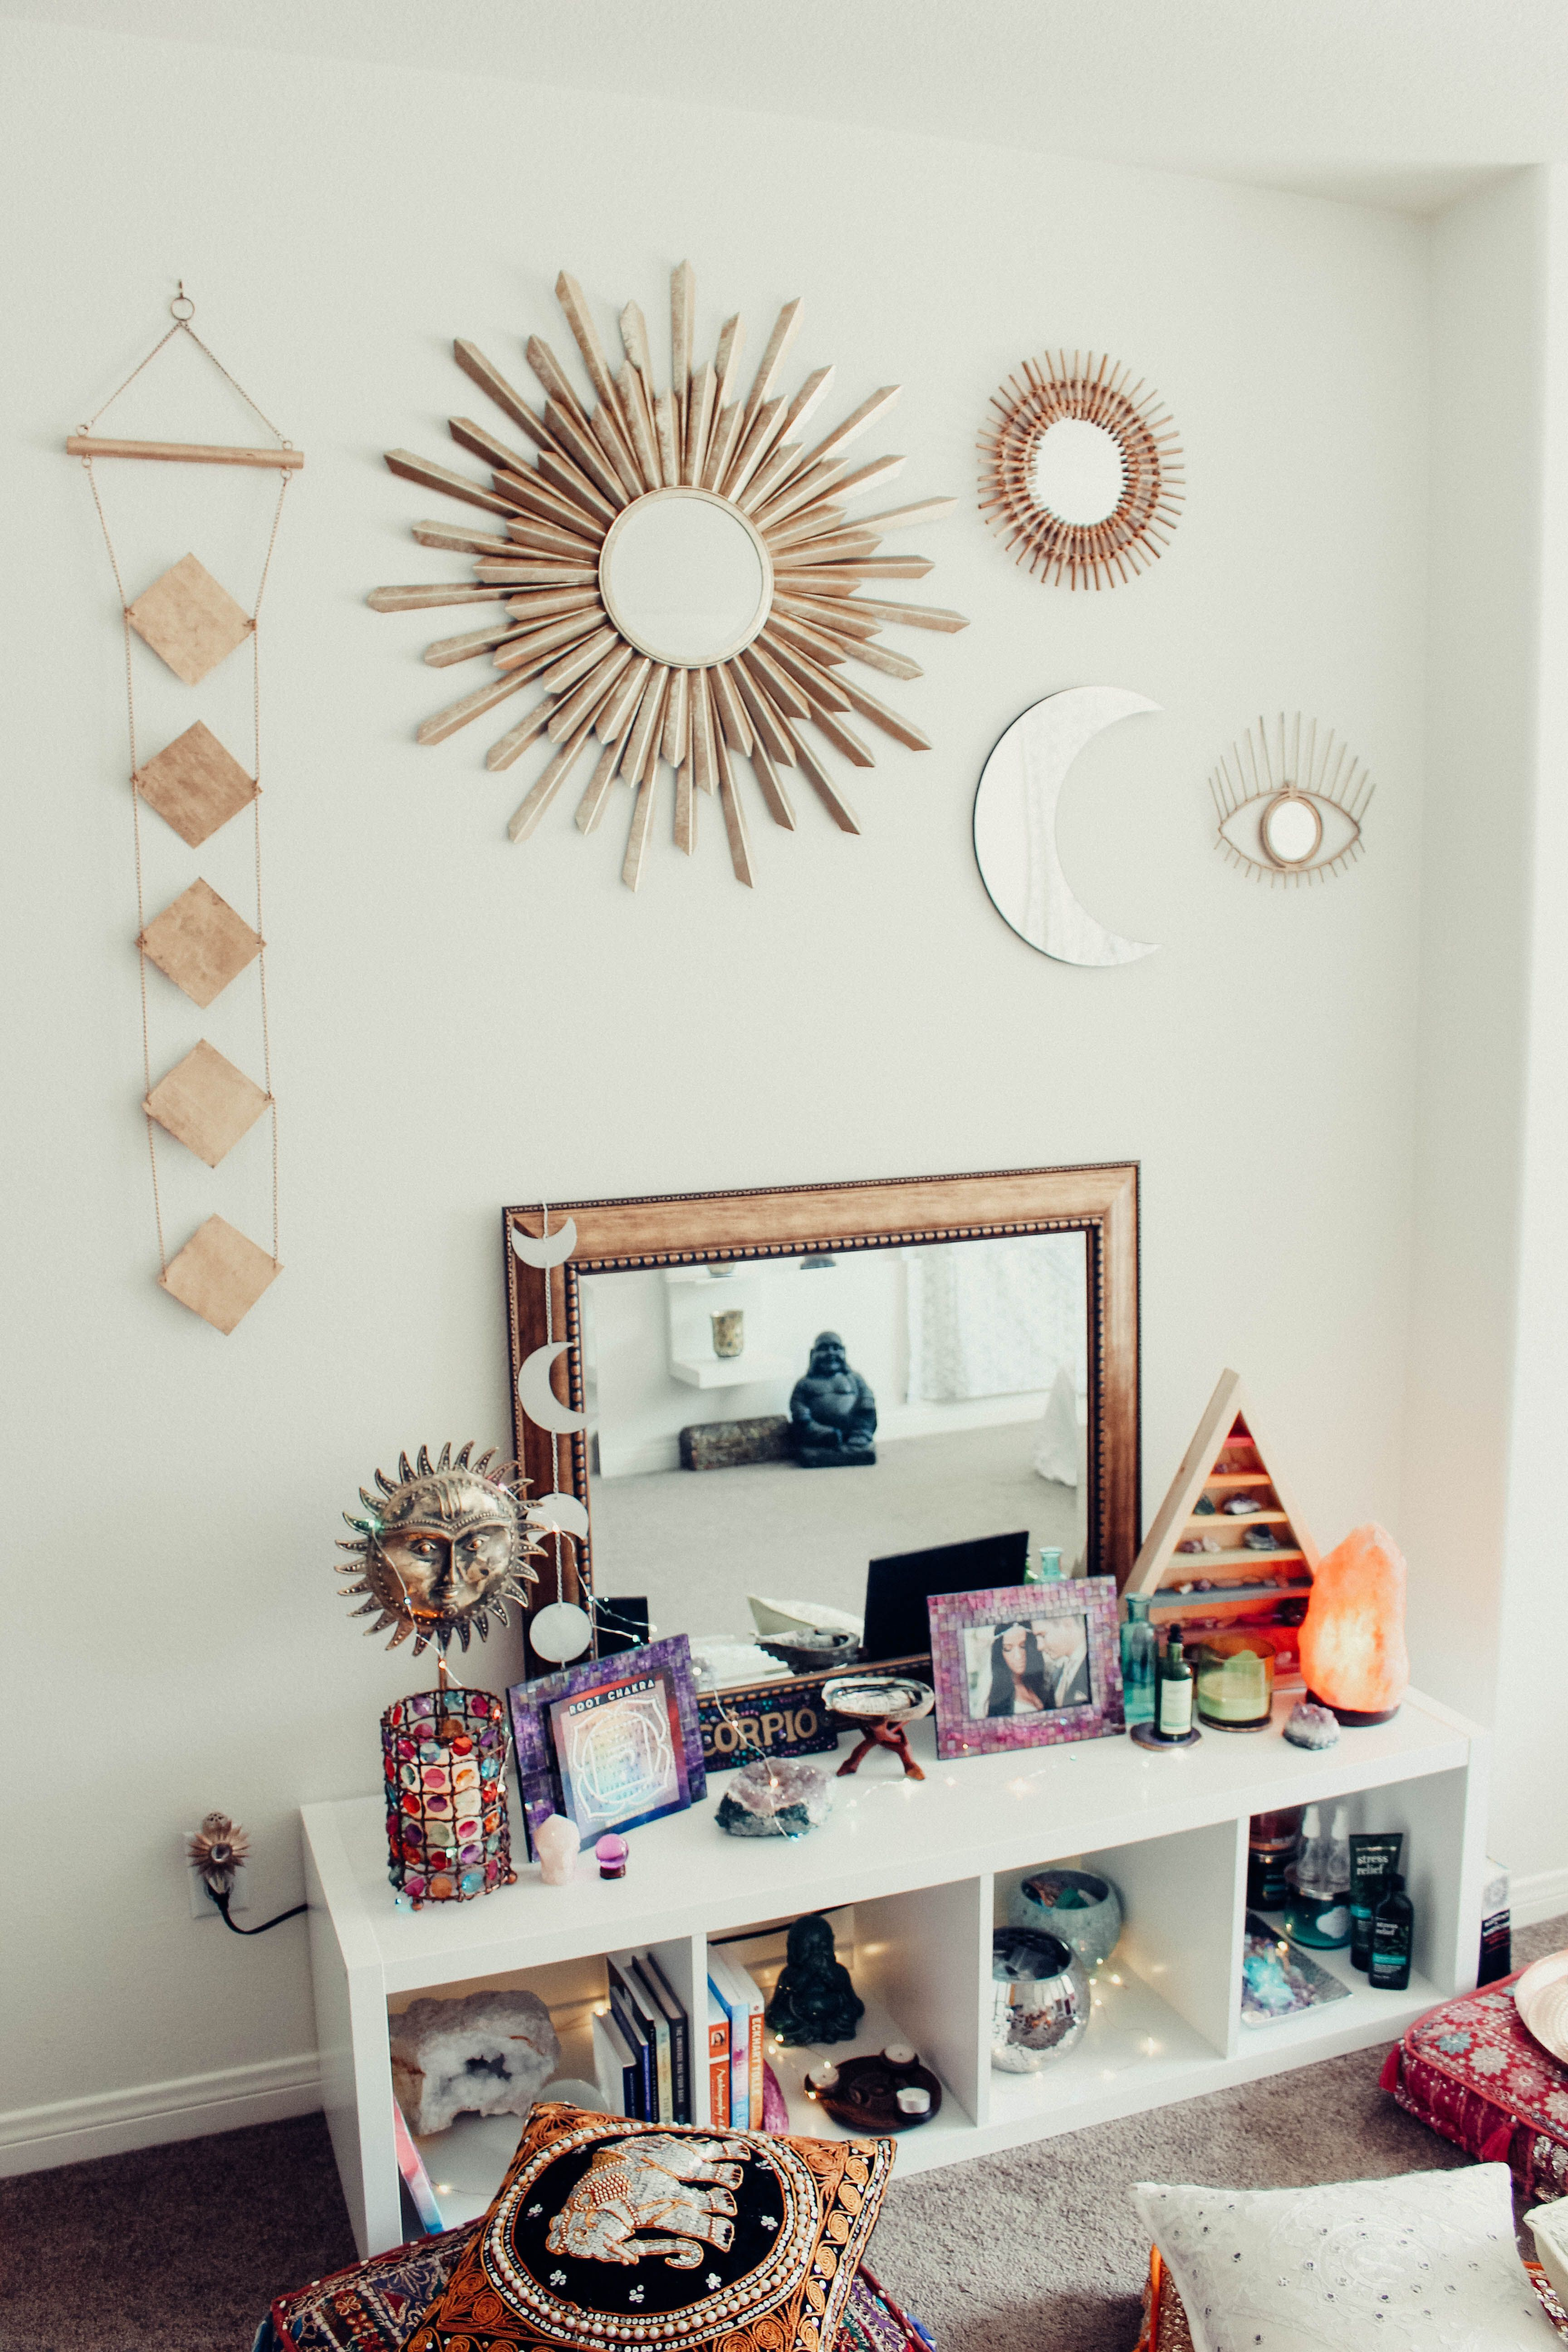 Meditation Room Designs: My Zen Space Diamond Perspective Wall Hanging, All Seeing